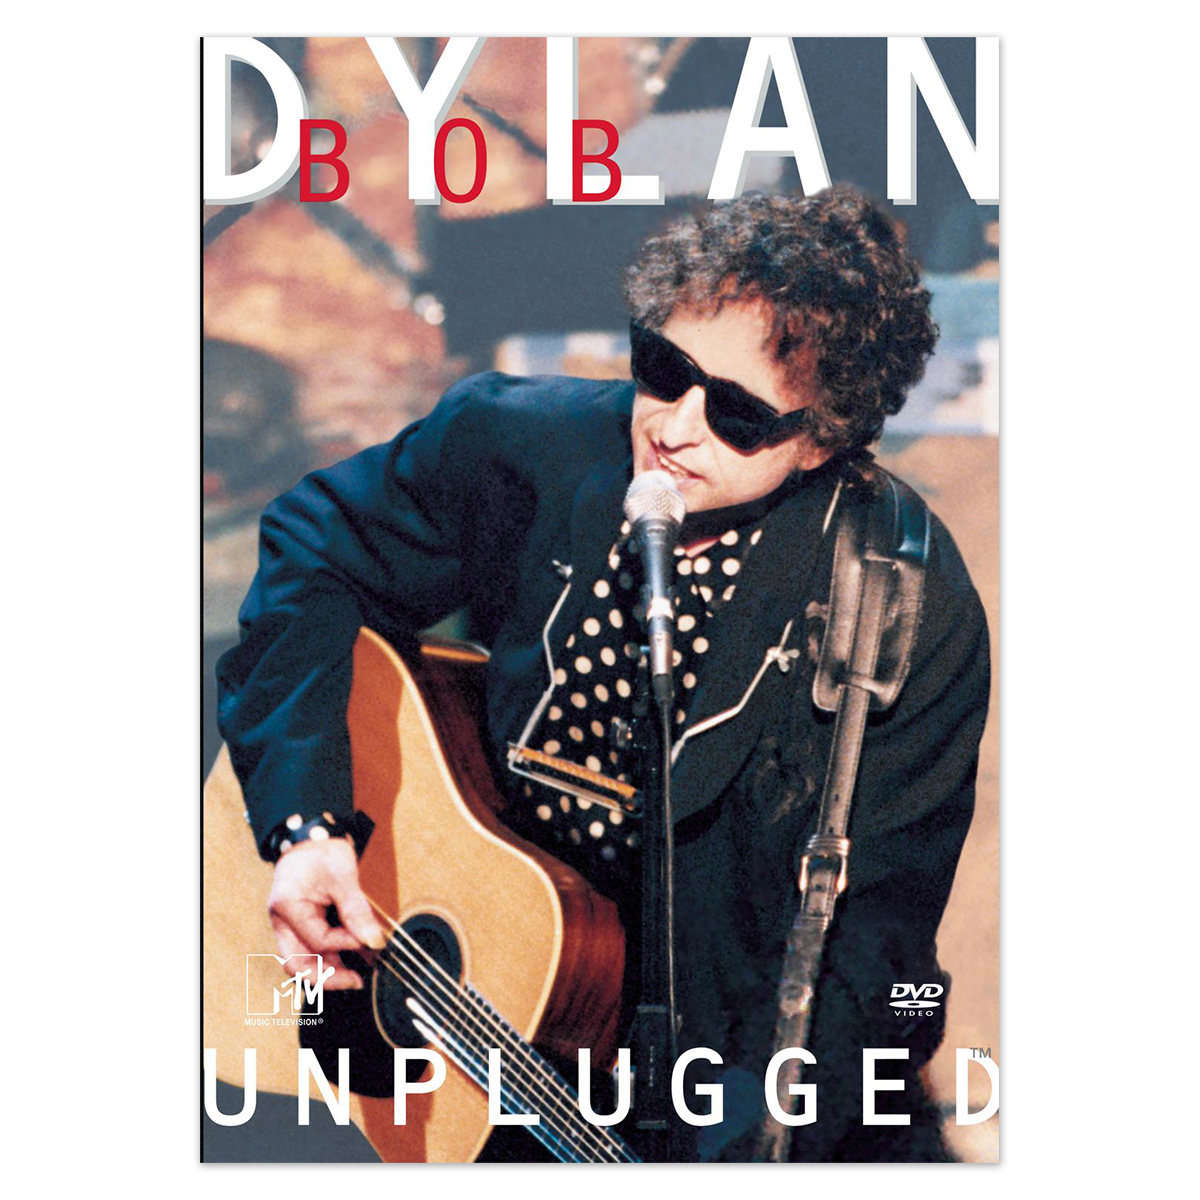 MTV Unplugged 1995 DVD